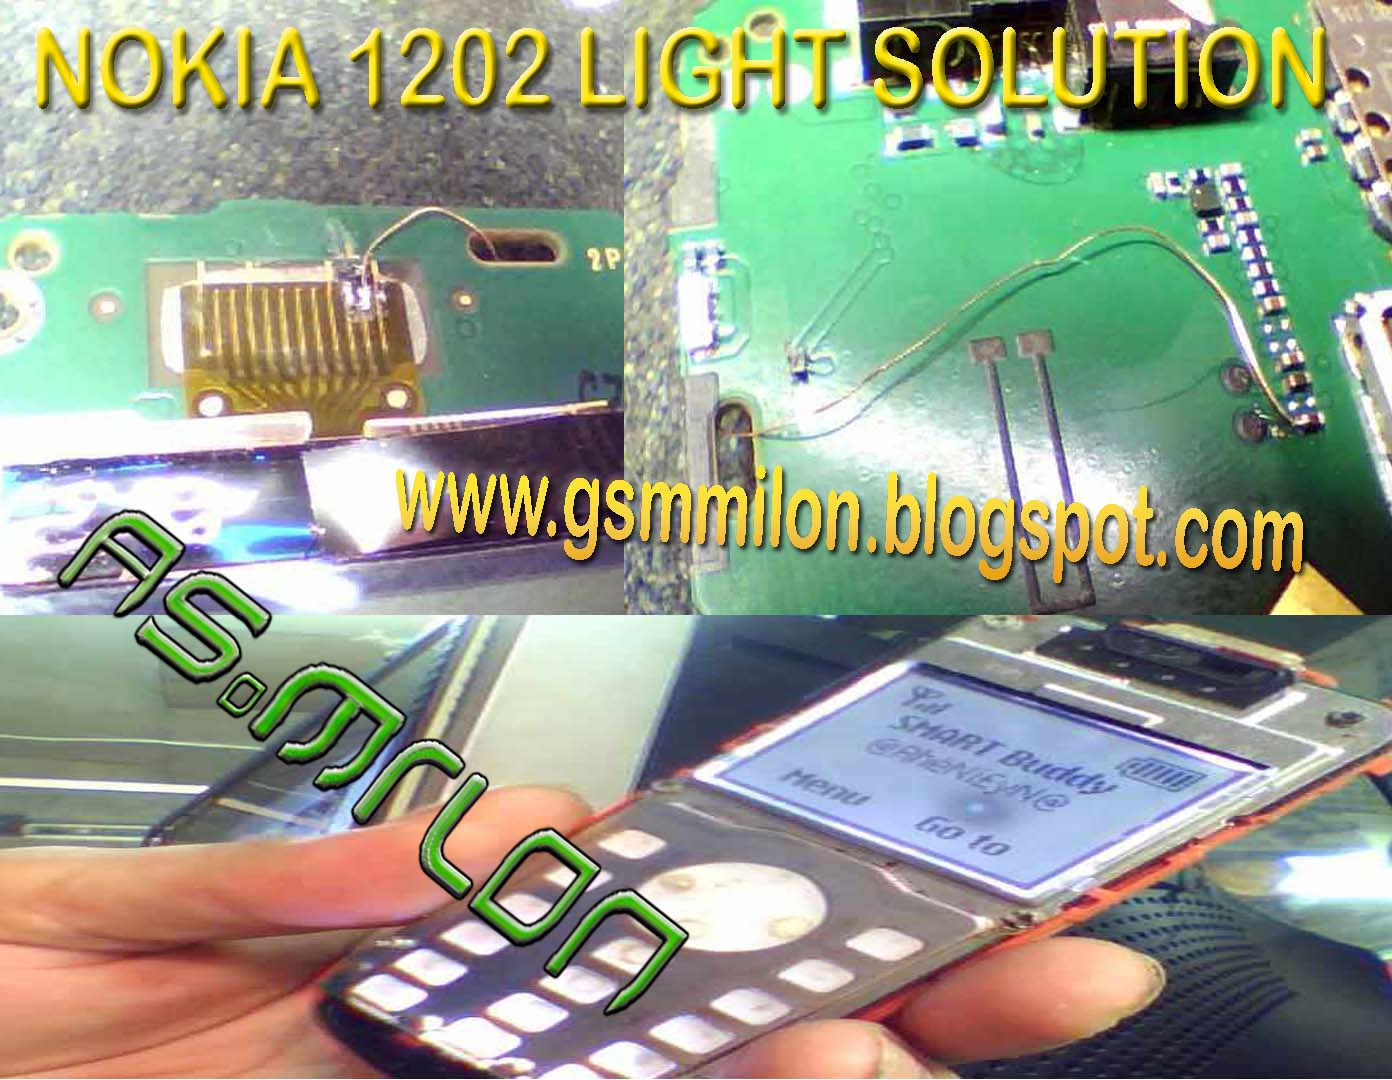 Wele Gsm Milon Forum Nokia Light Solution